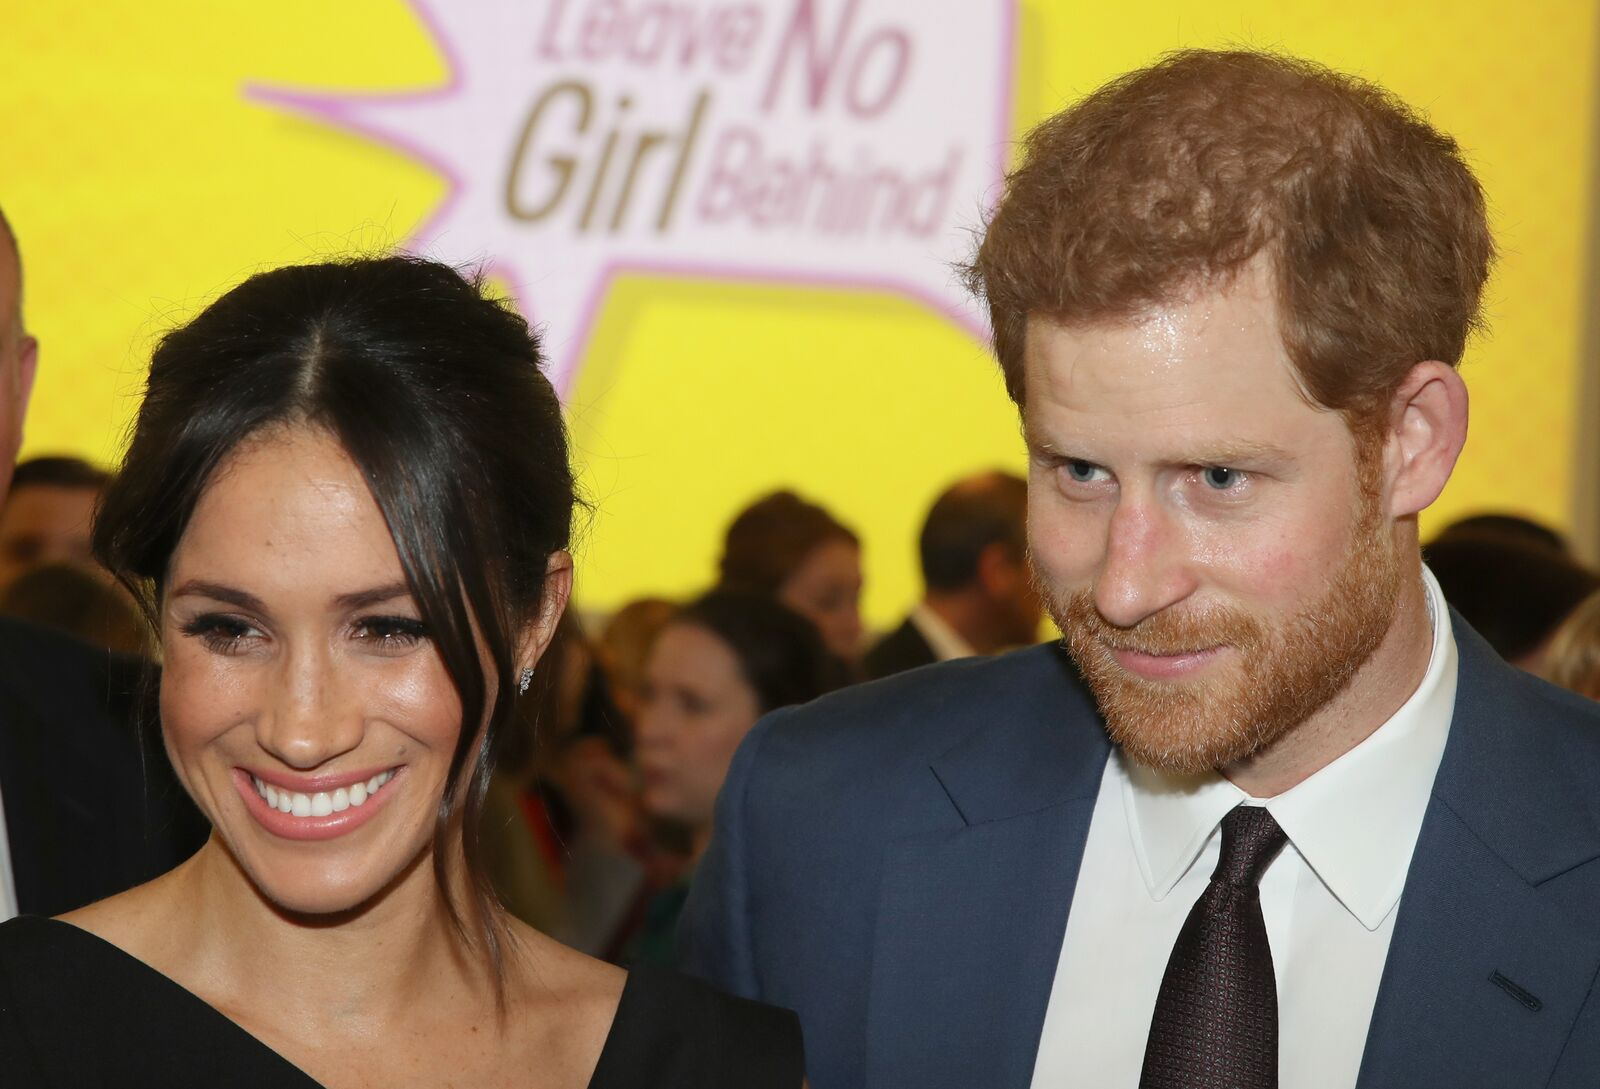 Meghan Markle and Prince Harry attend the Women's Empowerment reception hosted by Foreign Secretary Boris Johnson during the Commonwealth Heads of Government Meeting at the Royal Aeronautical Society. | Photo: Getty Images